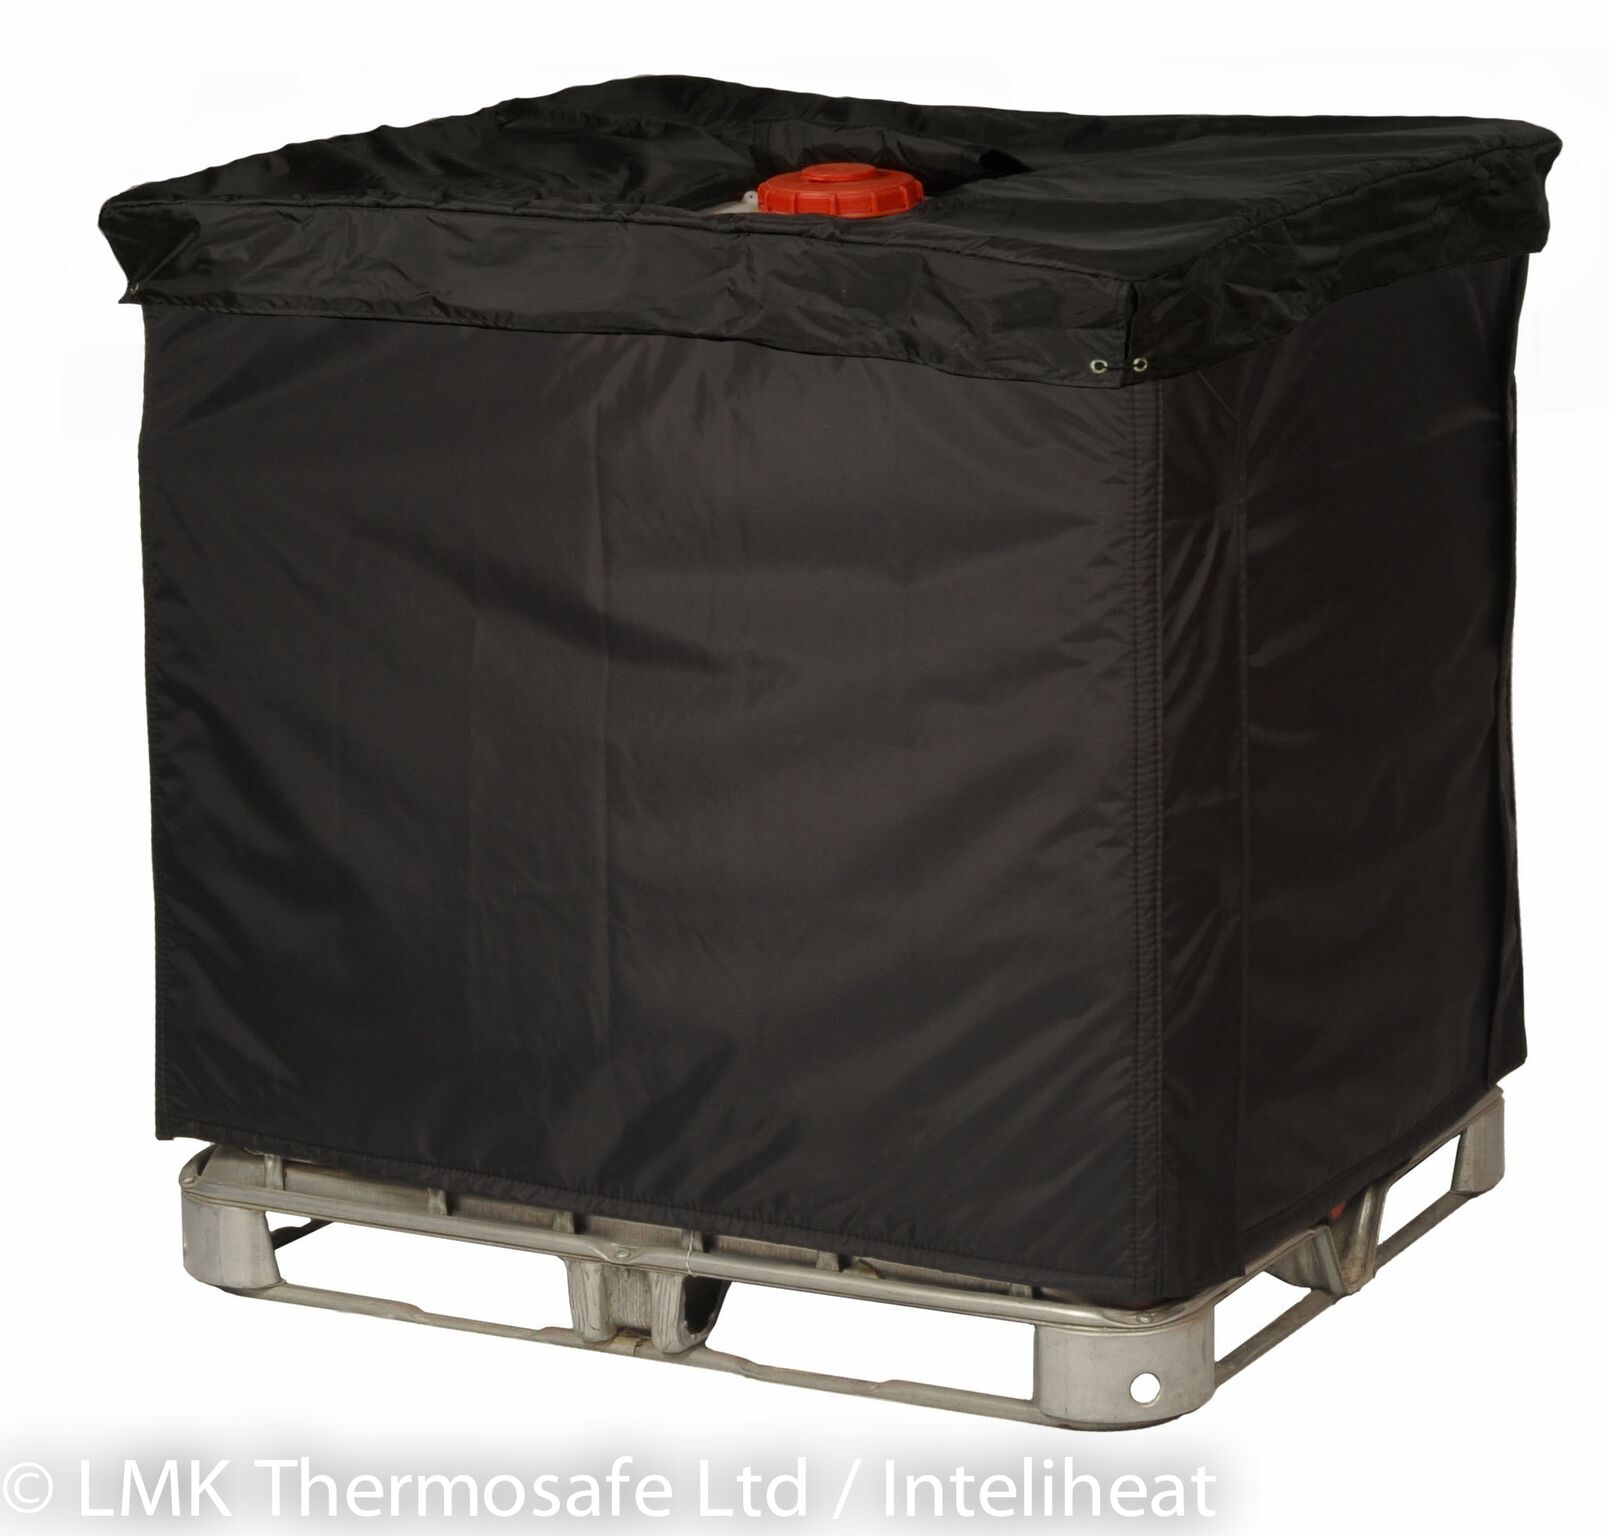 insulated ibc tote cover for 275 330 gallon ibc totes. Black Bedroom Furniture Sets. Home Design Ideas